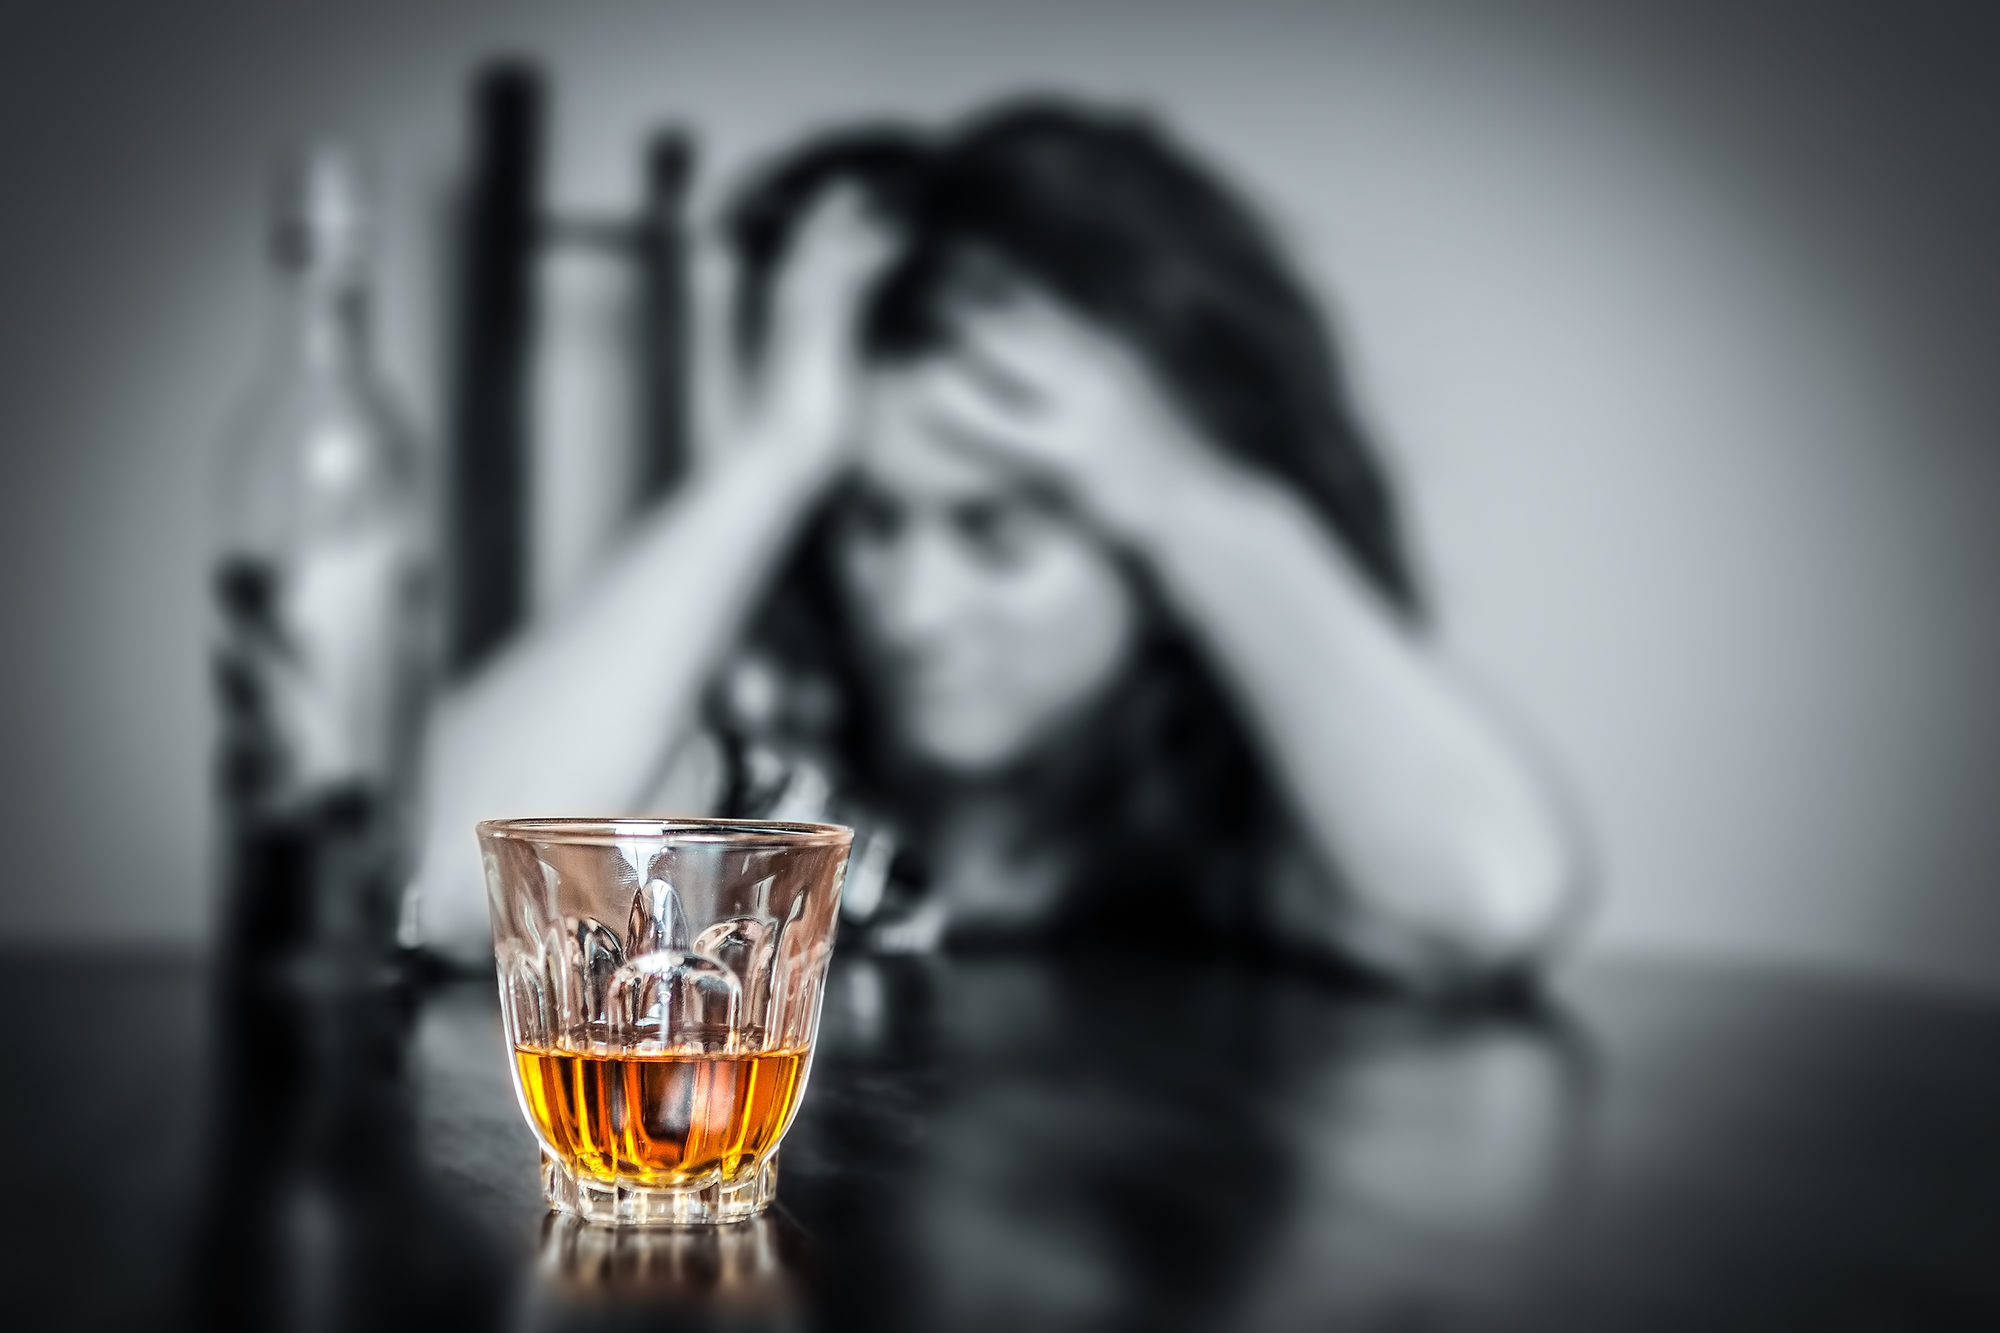 Recovery Place Florida | Luxury Rehab, Detox and Addiction Treatment